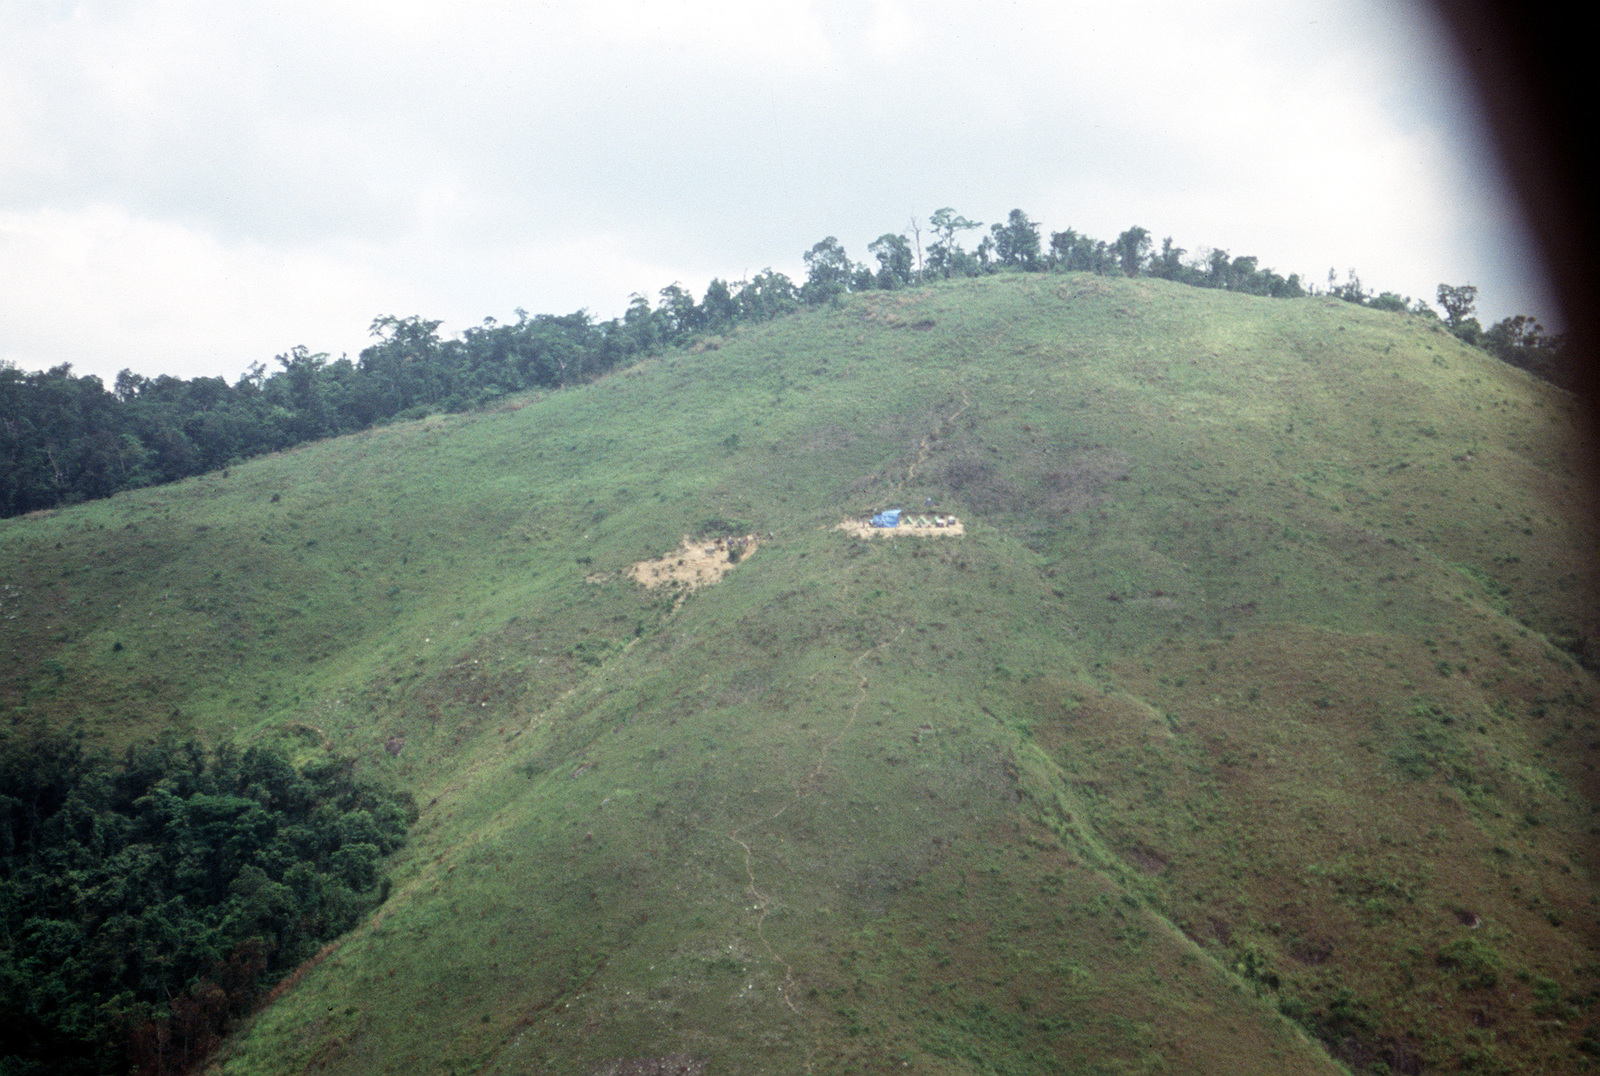 A view of a campsite occupied by Joint Casualty Recovery Center personnel and members of a joint U.S./Vietnamese anthropological team. Team members are conducting excavations in the area of Dong Nua Mountain, Quang Binh Province, in an effort to locate remains of an American pilot whose A-7 Corsair II crashed in the area during the war in Vietnam.